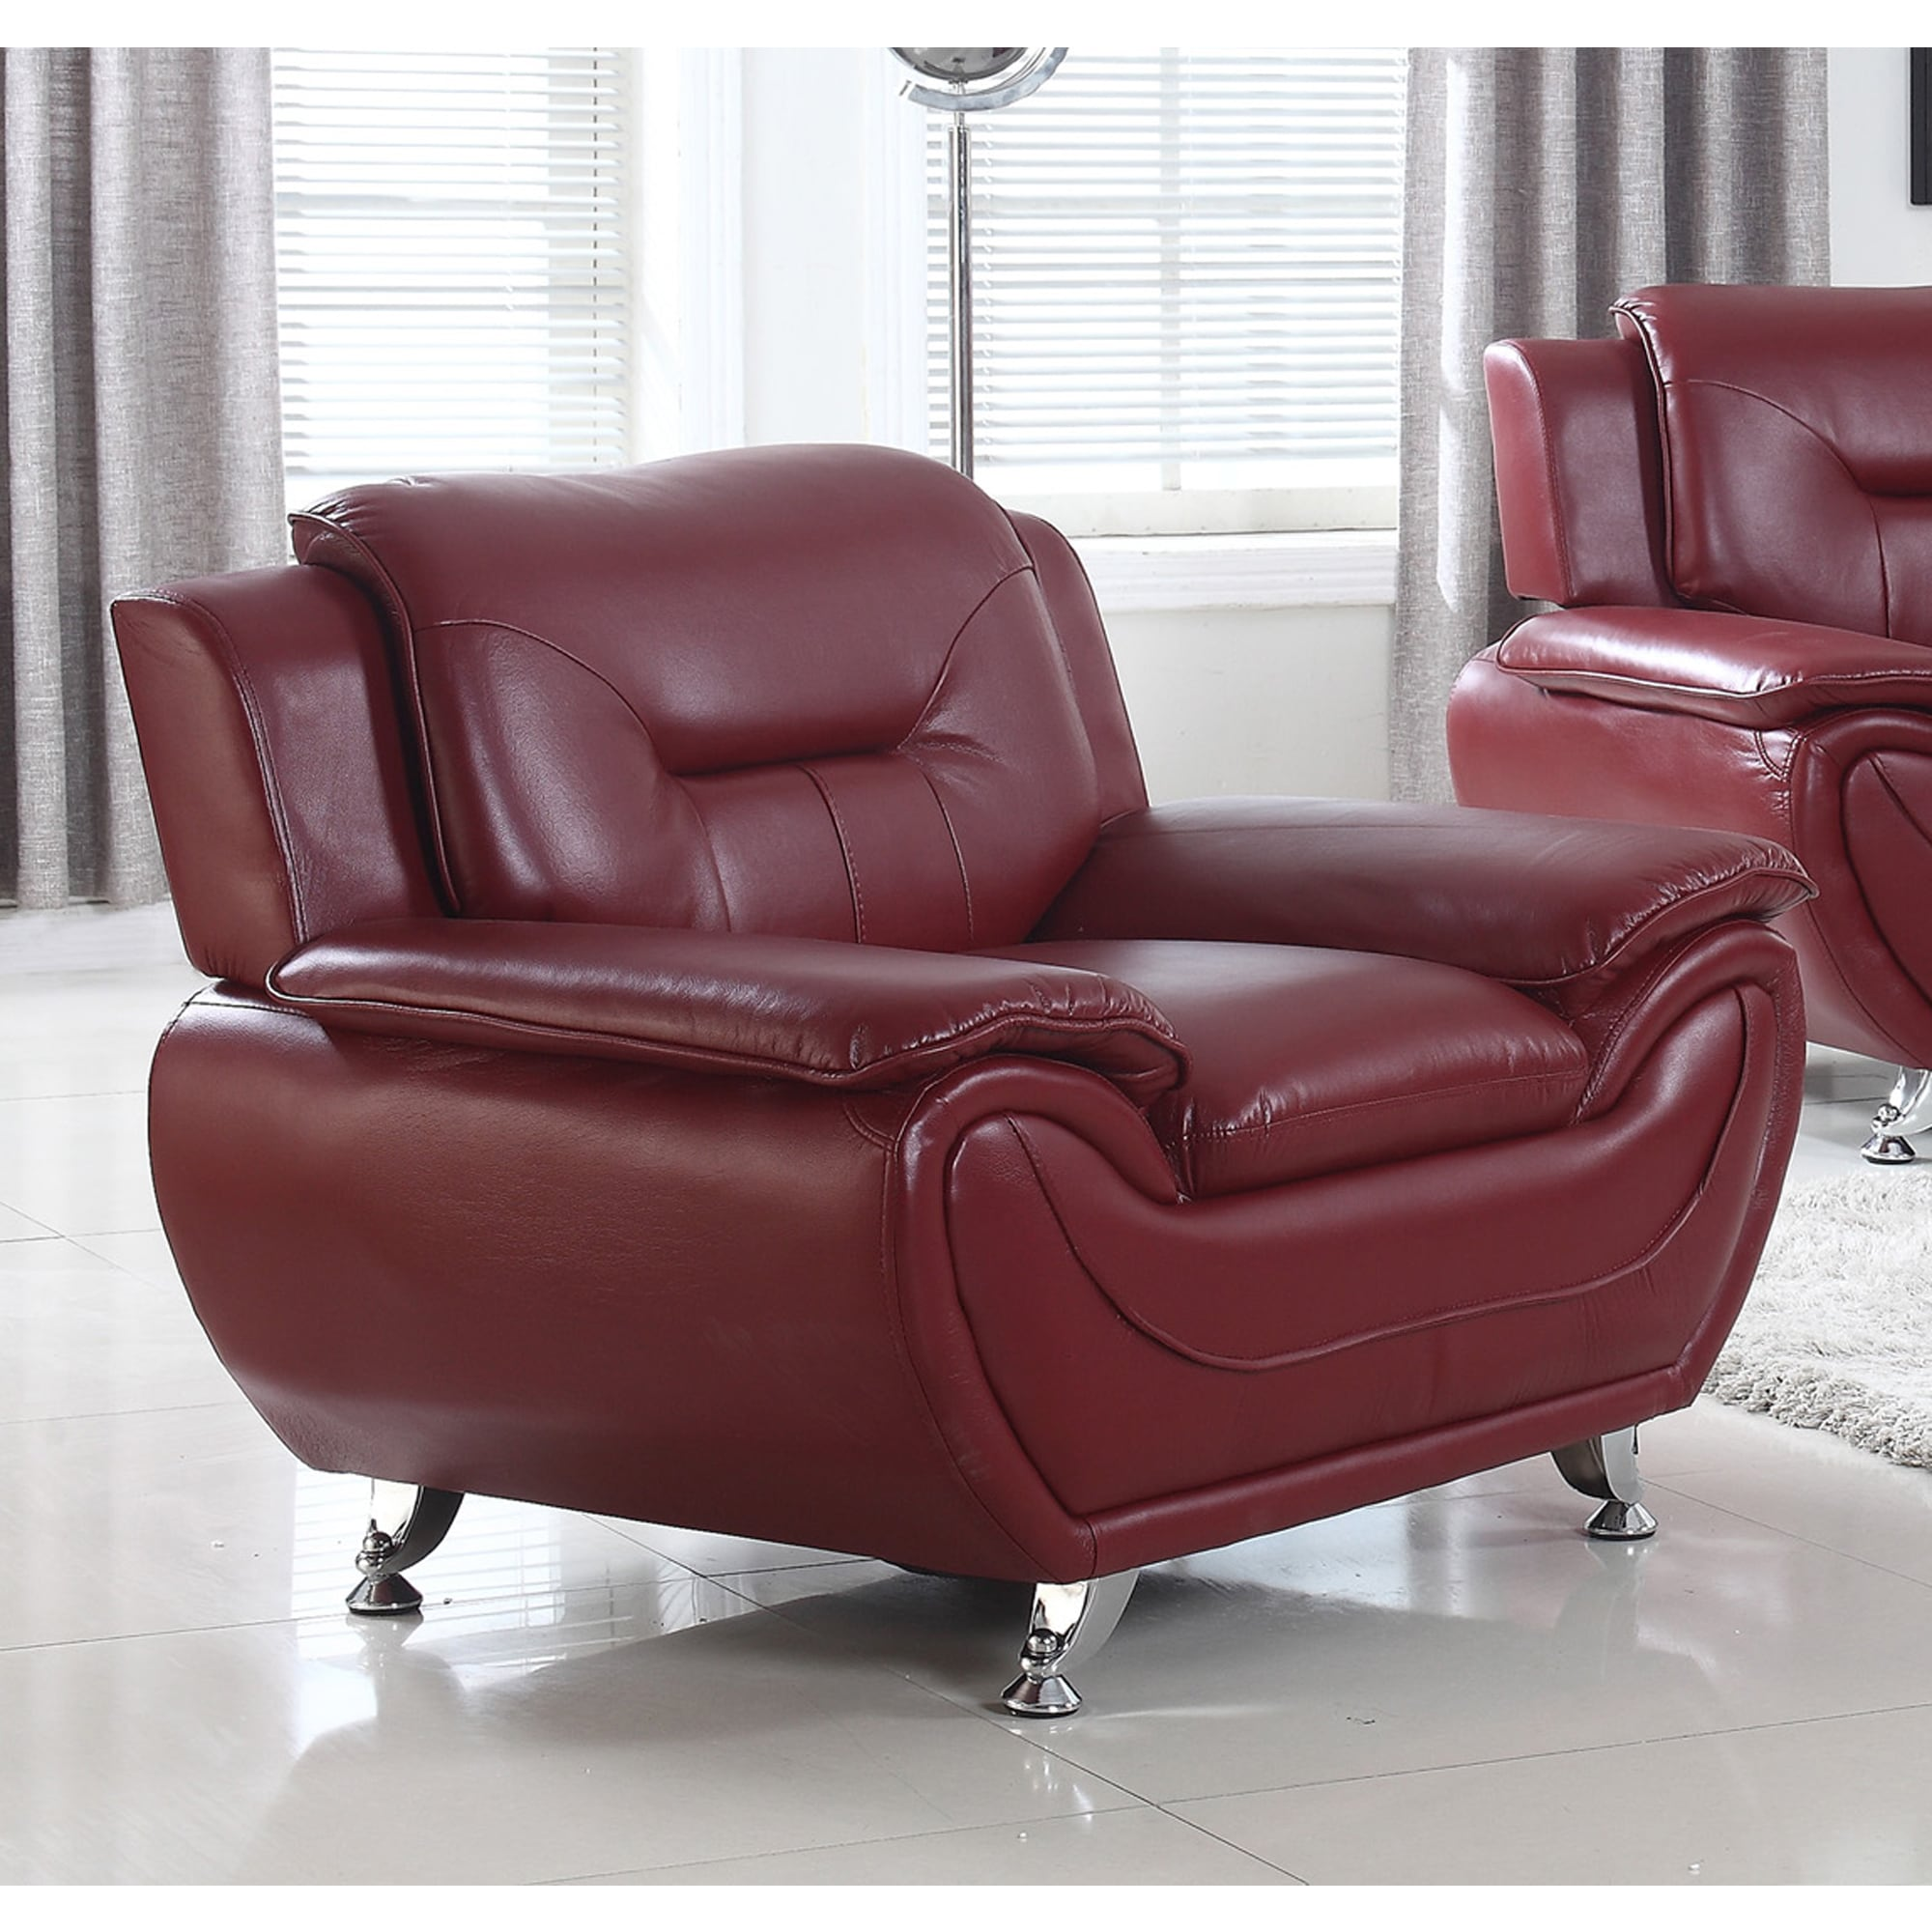 Accent Chairs Burgundy Living Room Chairs For Less Overstock